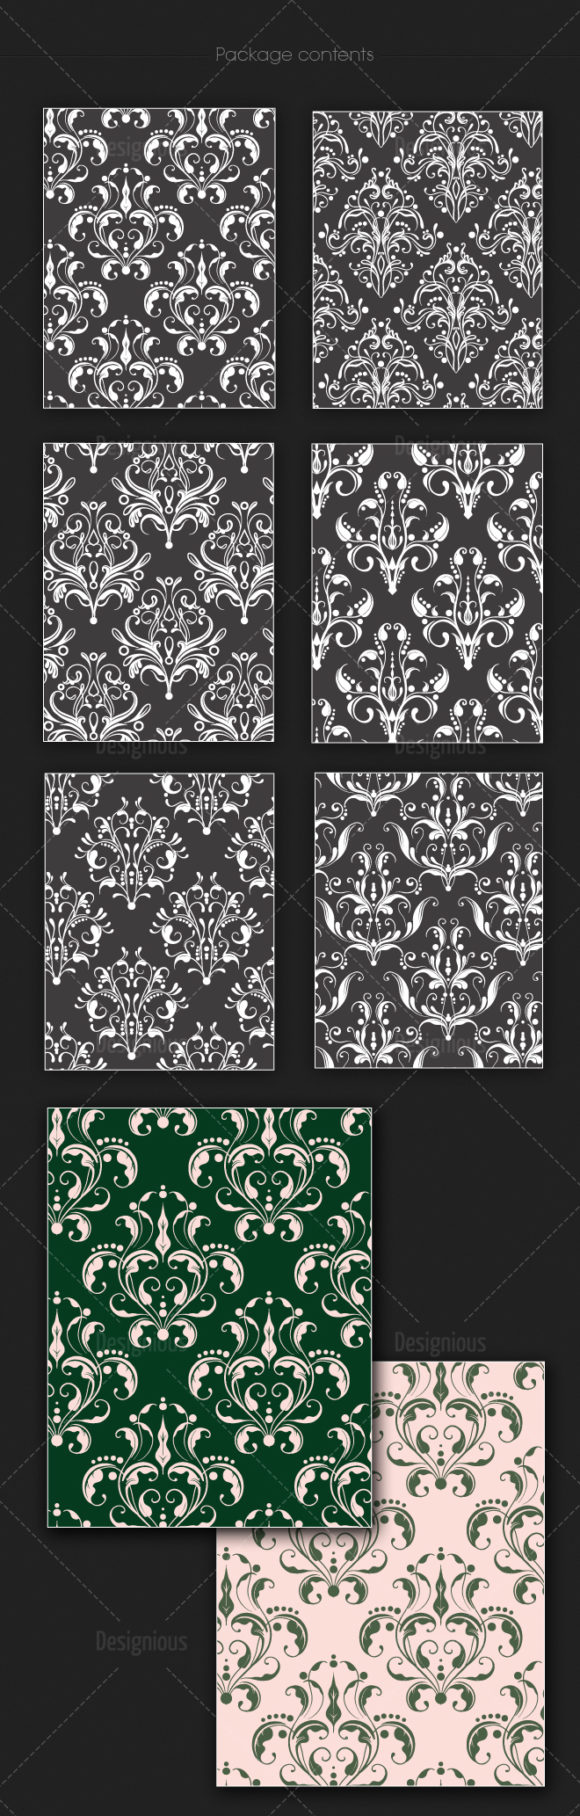 Seamless Patterns Vector Pack 131 products seamless patterns vector pack 131 large